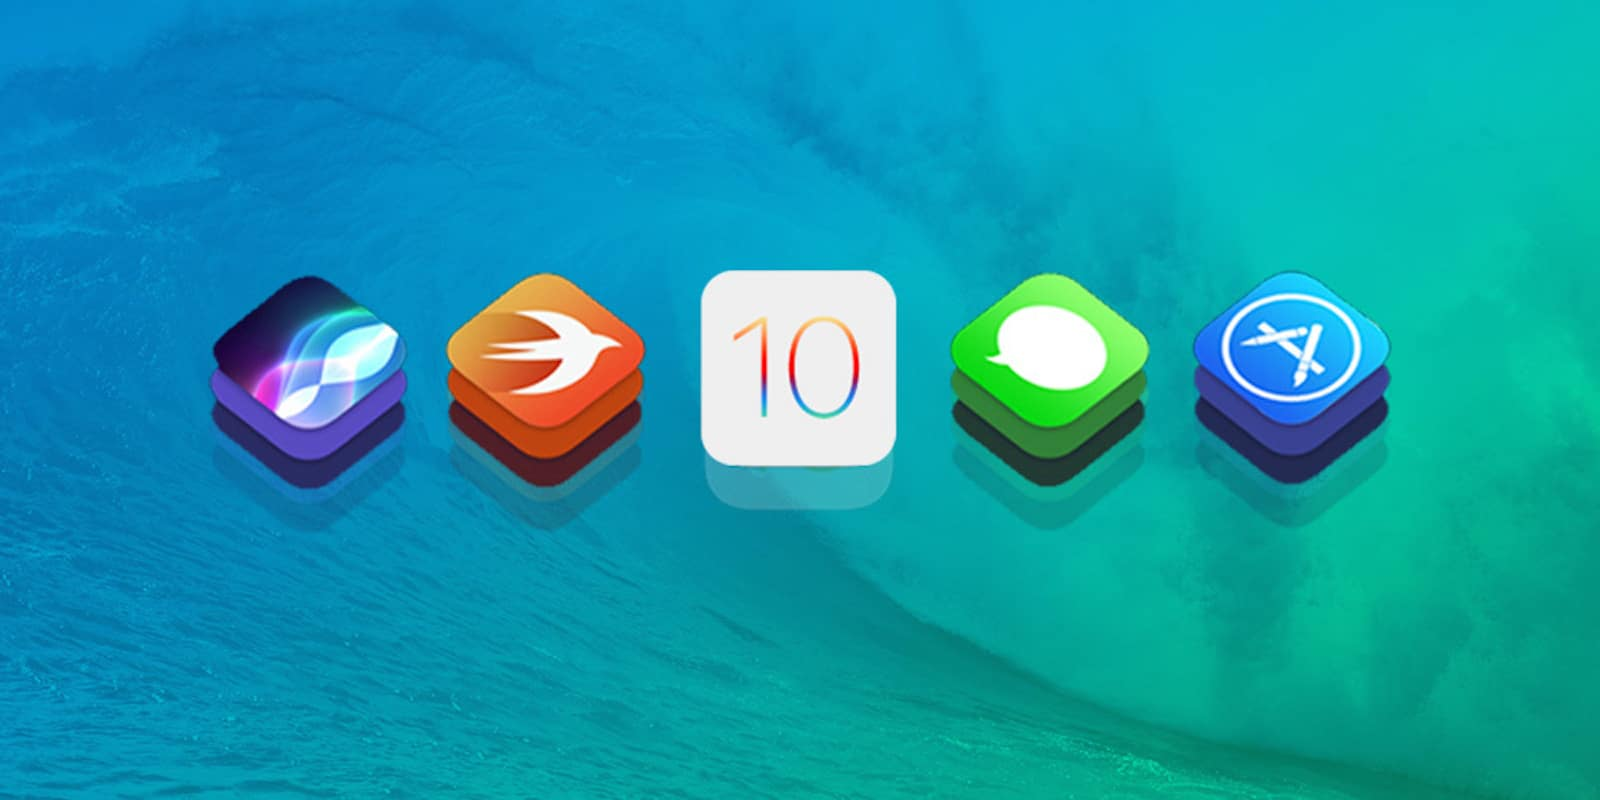 CoM - iOS 10 & Swift 3 Starter Bundle